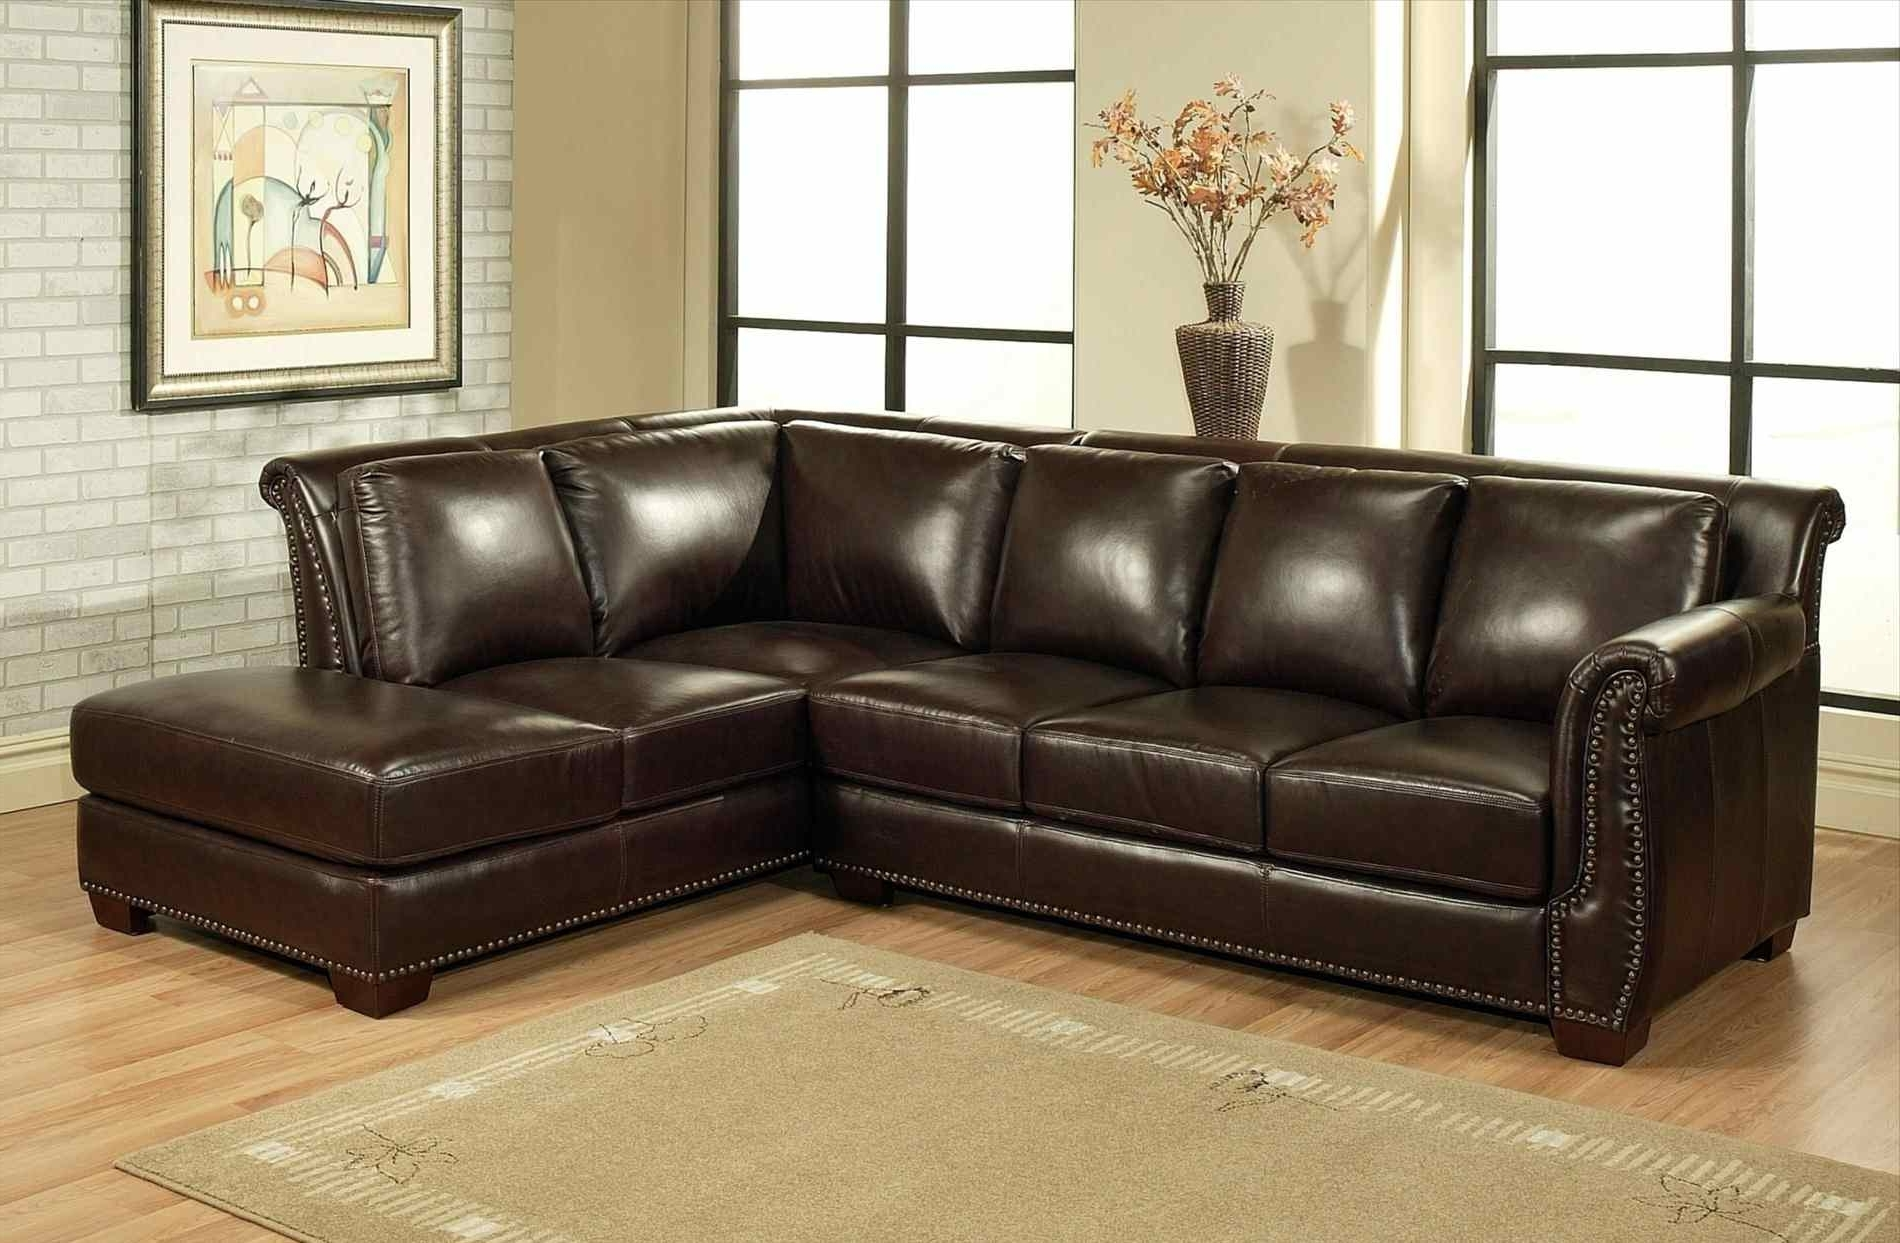 Most Recently Released Couch : Furniture Bad Boy Sectional Es Wrap Around Couch Furniture For Sectional Sofas At Bad Boy (View 8 of 20)